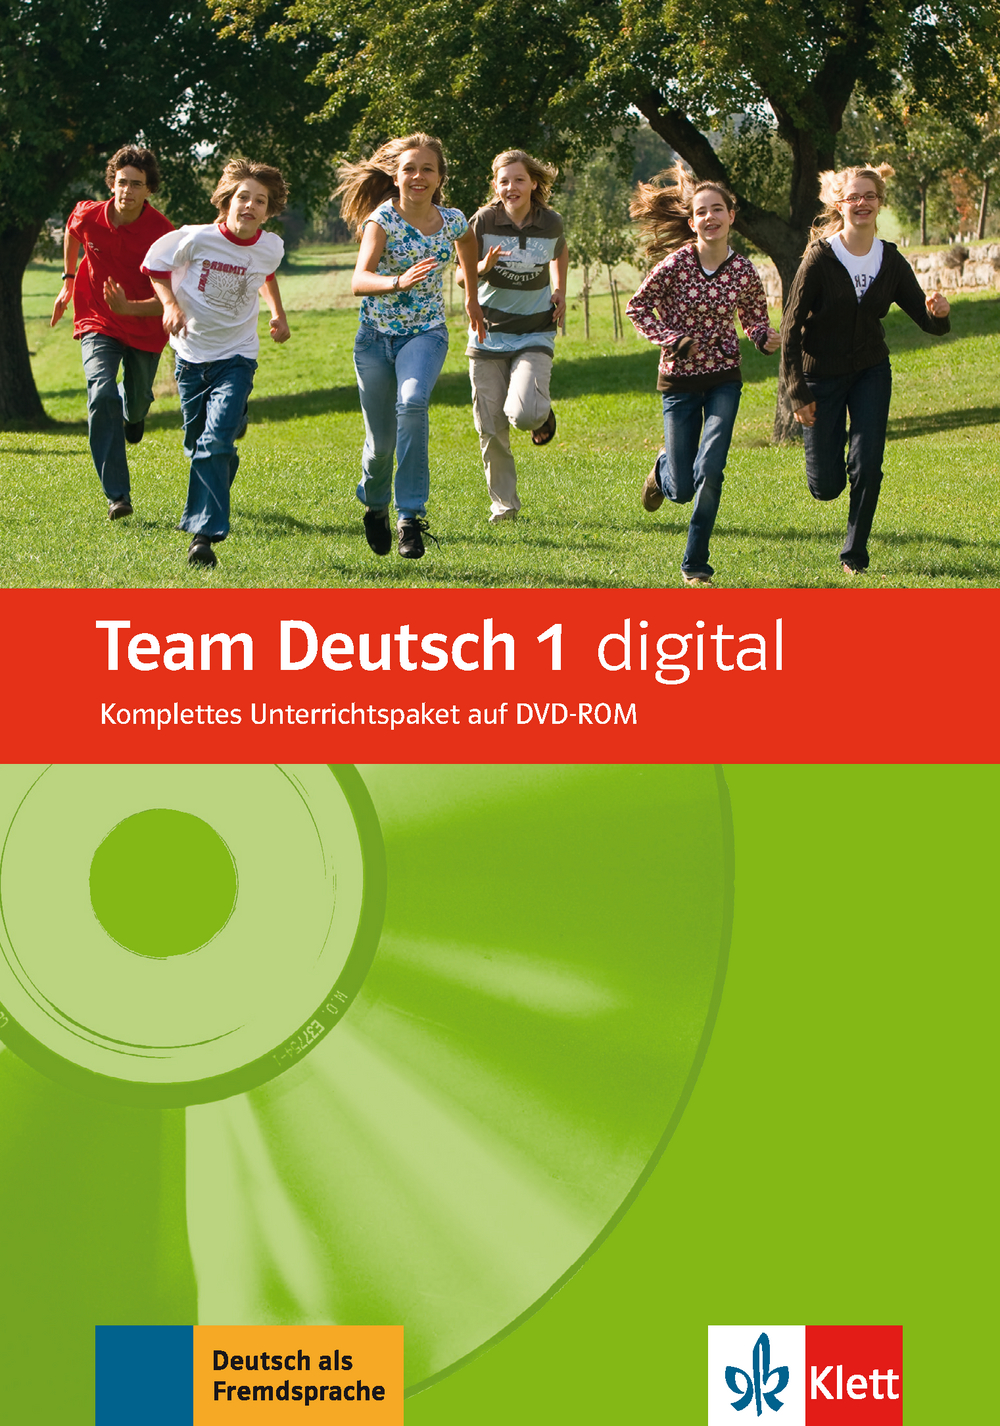 Team Deutsch 1 digital